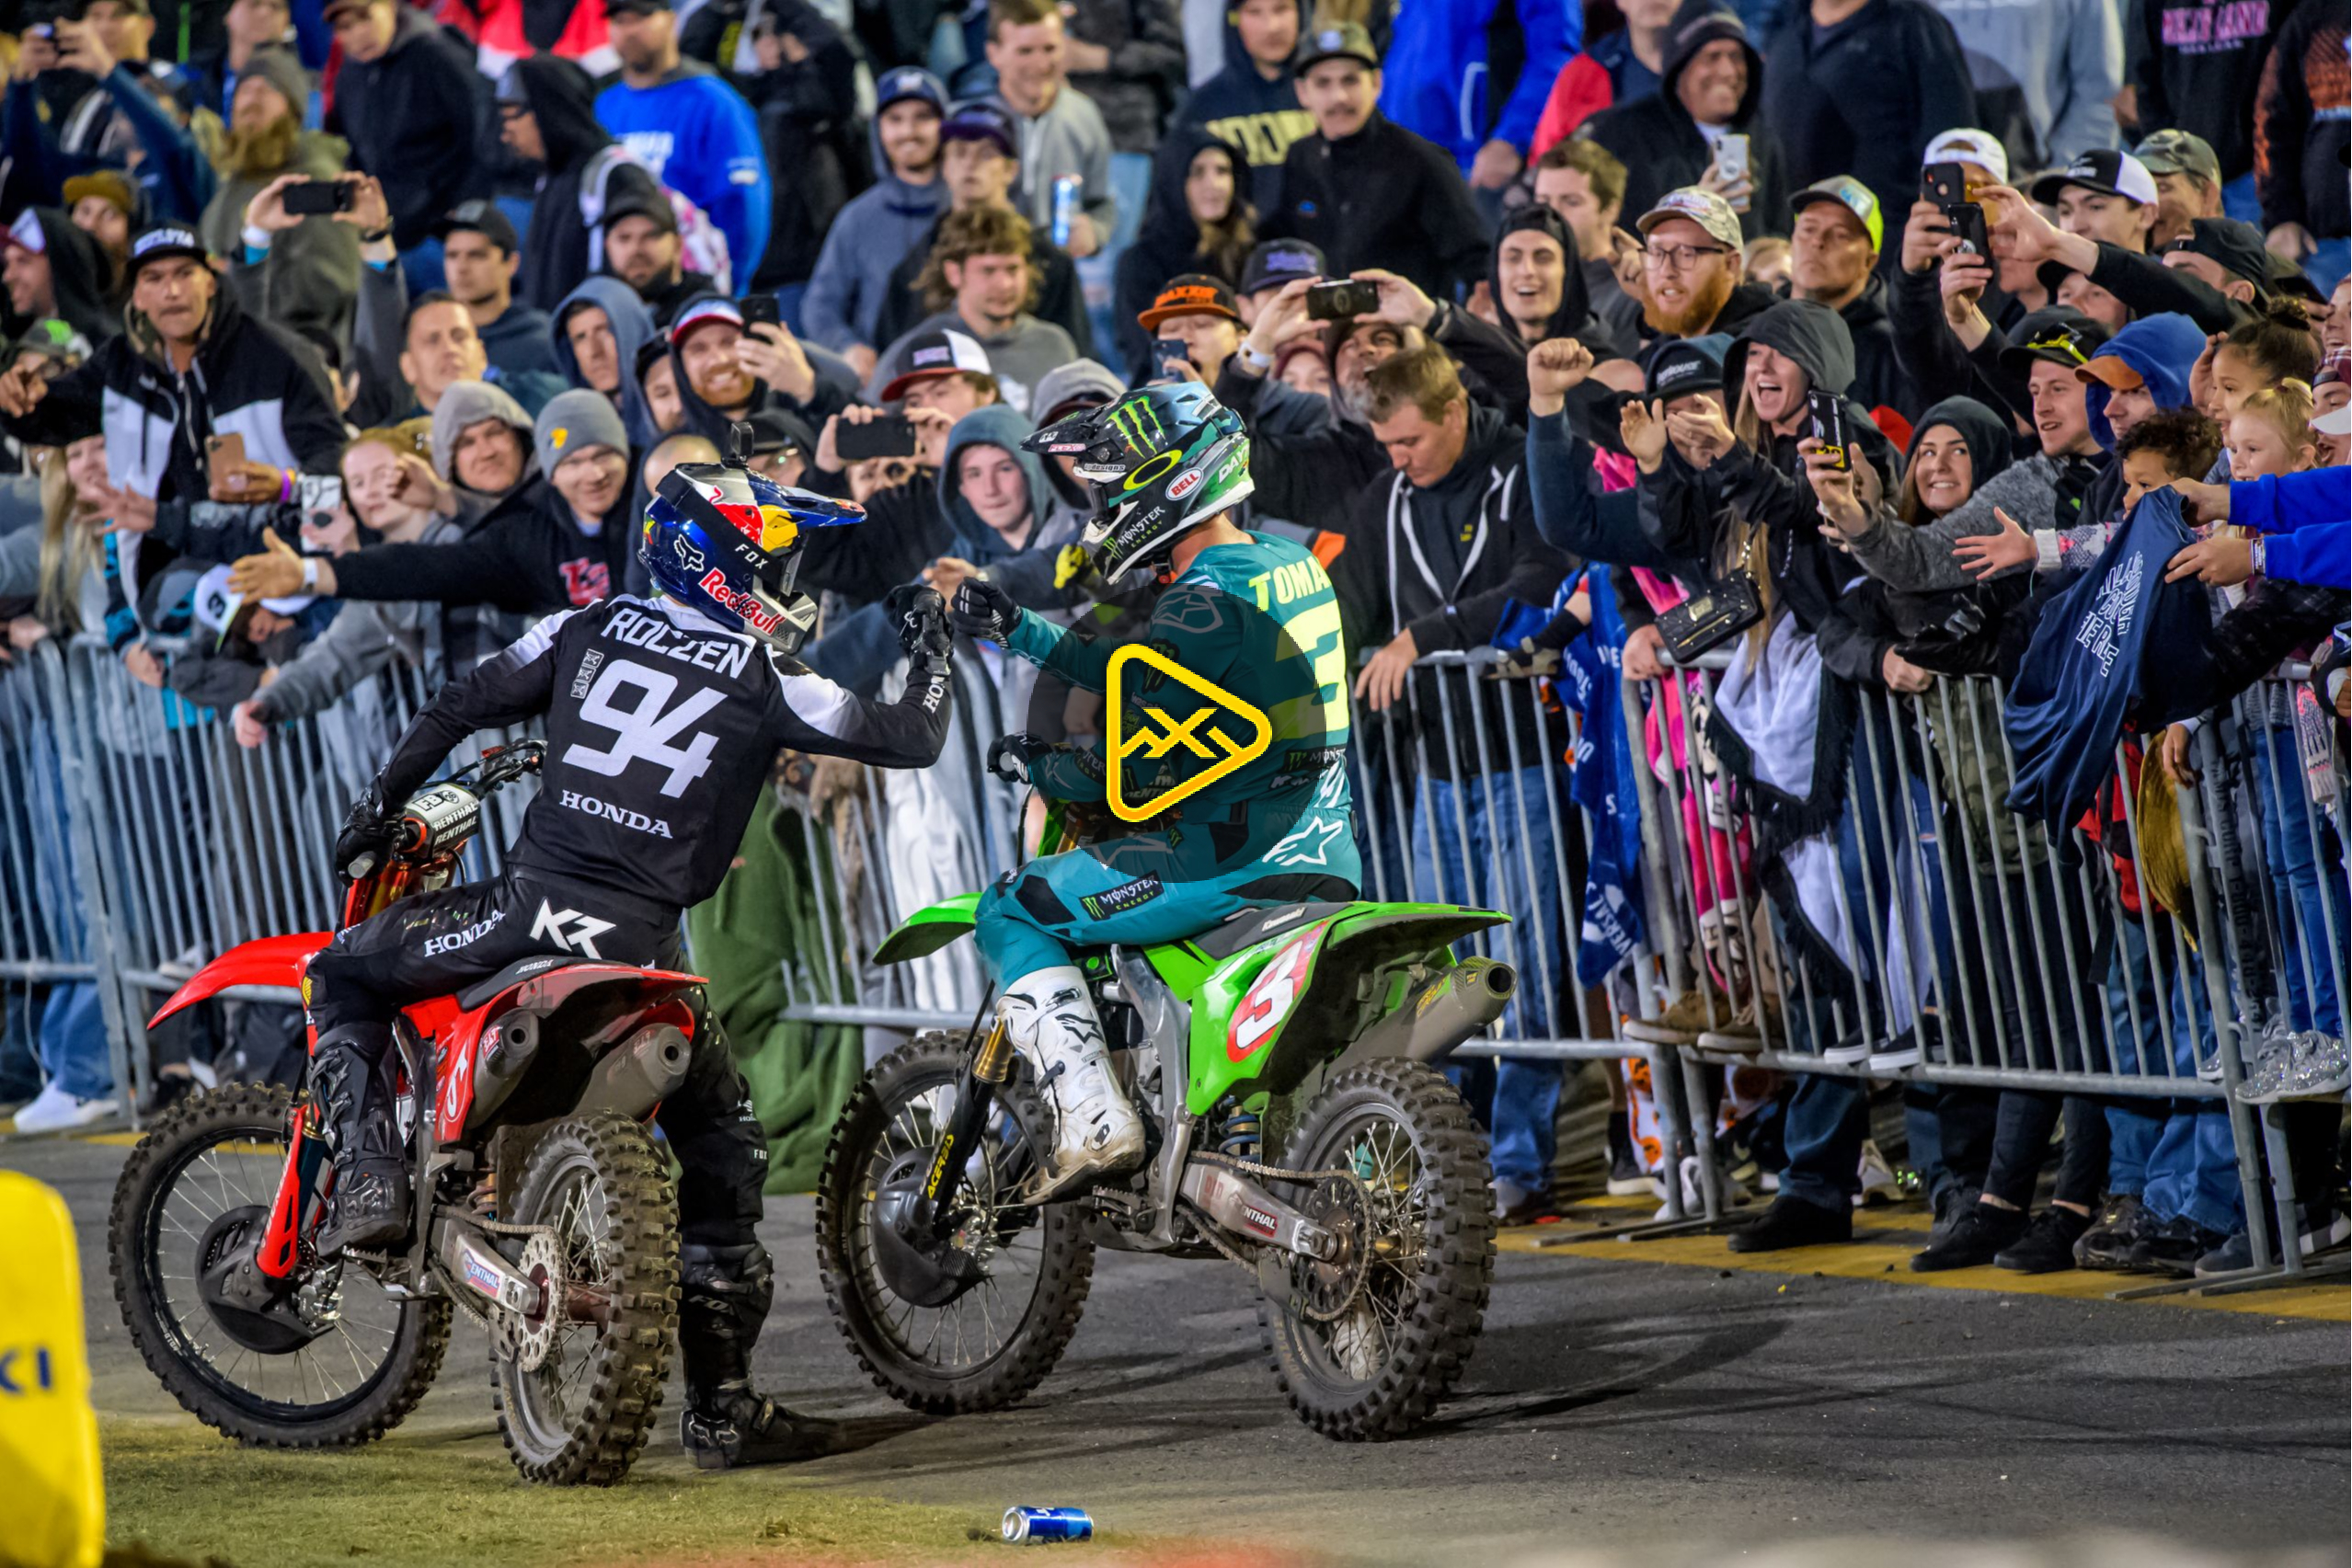 2020 450SX Supercross Championship in Review